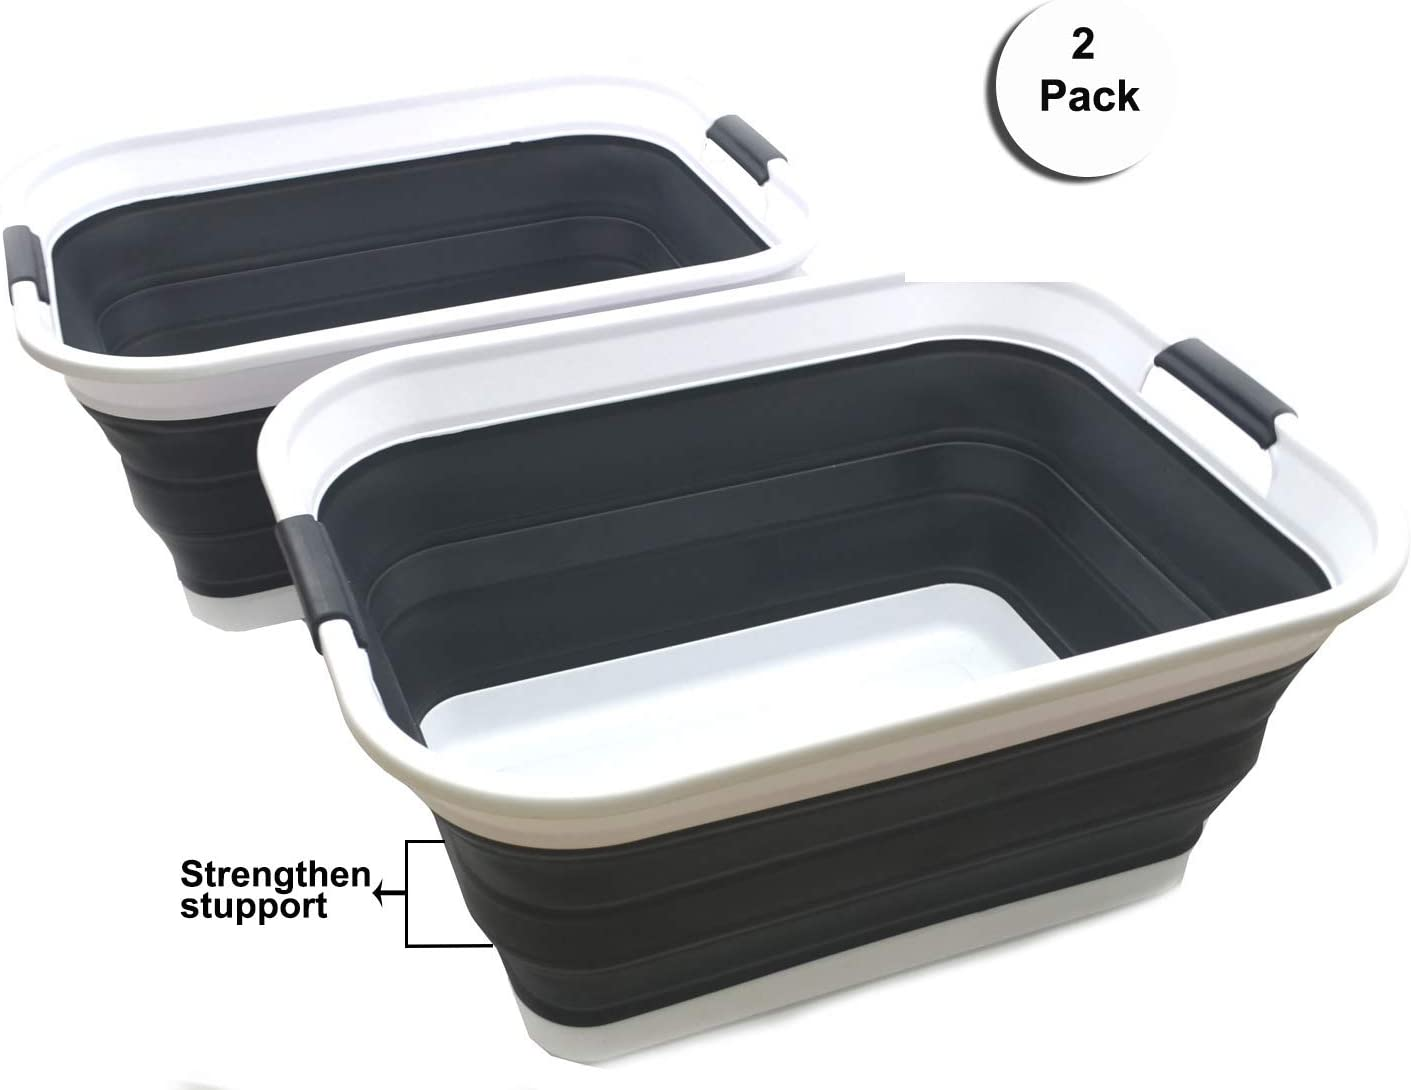 SAMMART Set of 2 Collapsible Plastic Laundry Basket - Foldable Pop Up Storage Container/Organizer - Portable Washing Tub - Space Saving Hamper/Basket (2 Rectangular - Strengthen, Black)